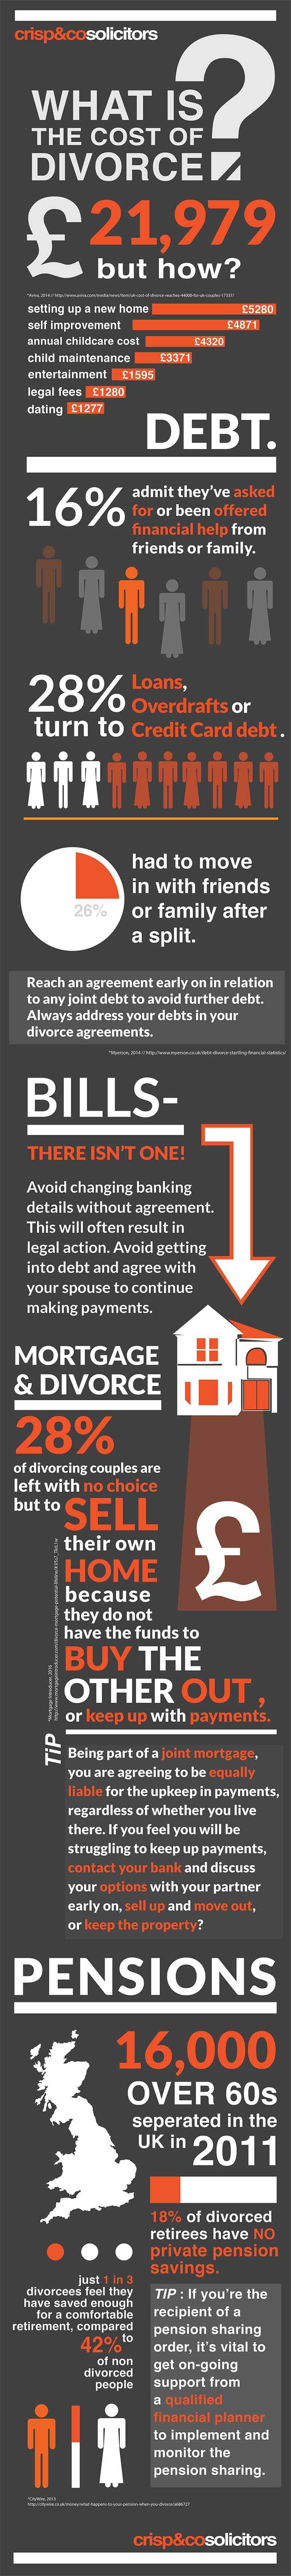 infographic that breaks down the cost of divorce and the mechanisms involved